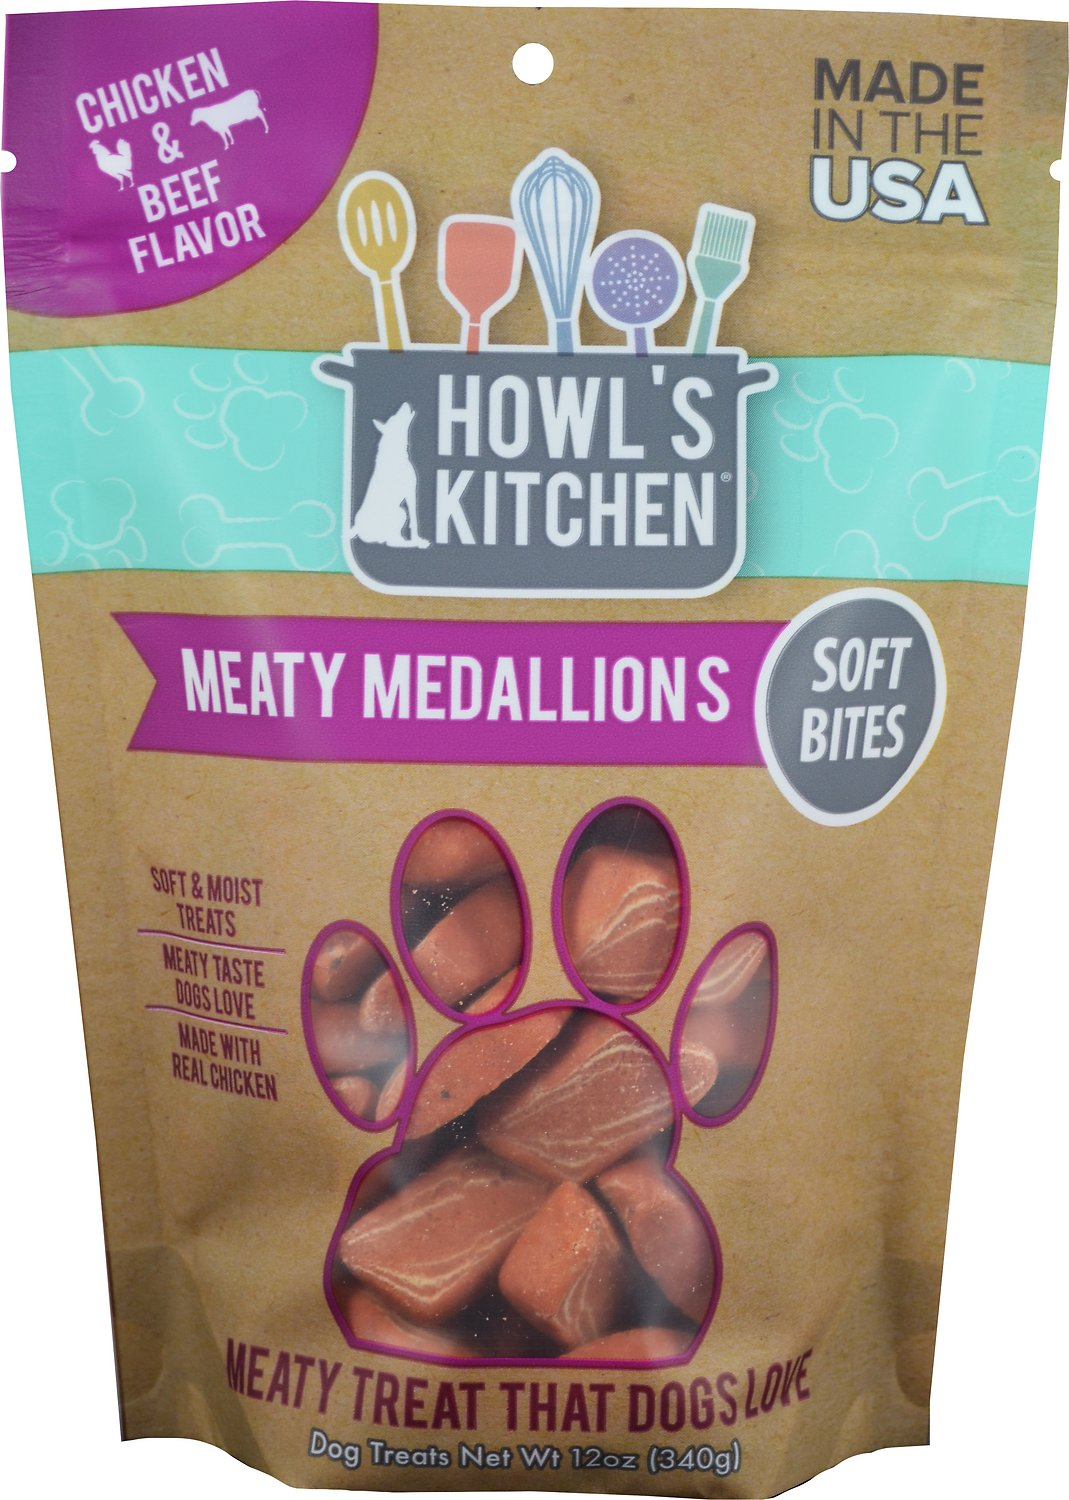 Howl's Kitchen Meaty Medallions Chicken & Beef Flavor Dog Treats, 12-oz